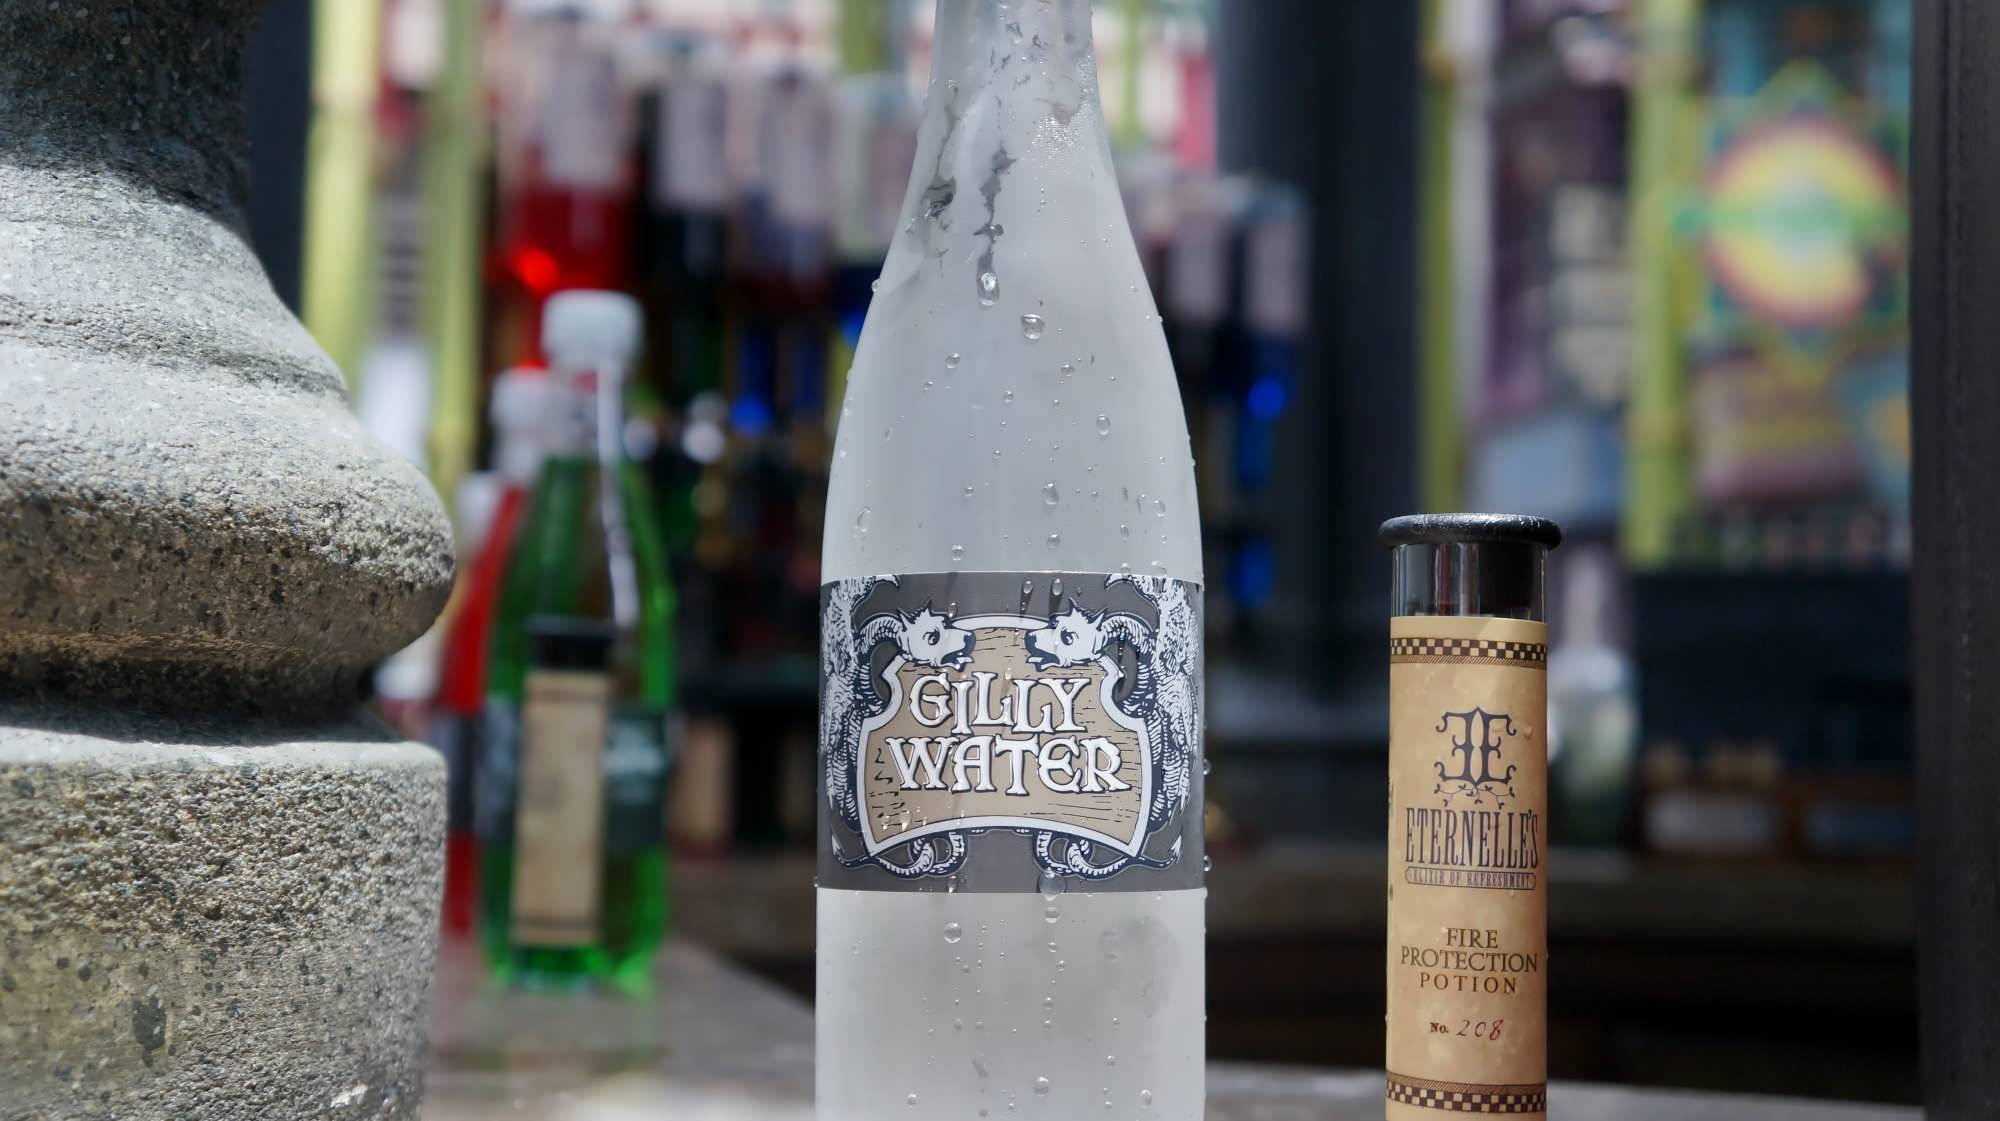 Gilly Water and Potion at Eternelle's Elixir of Refreshment